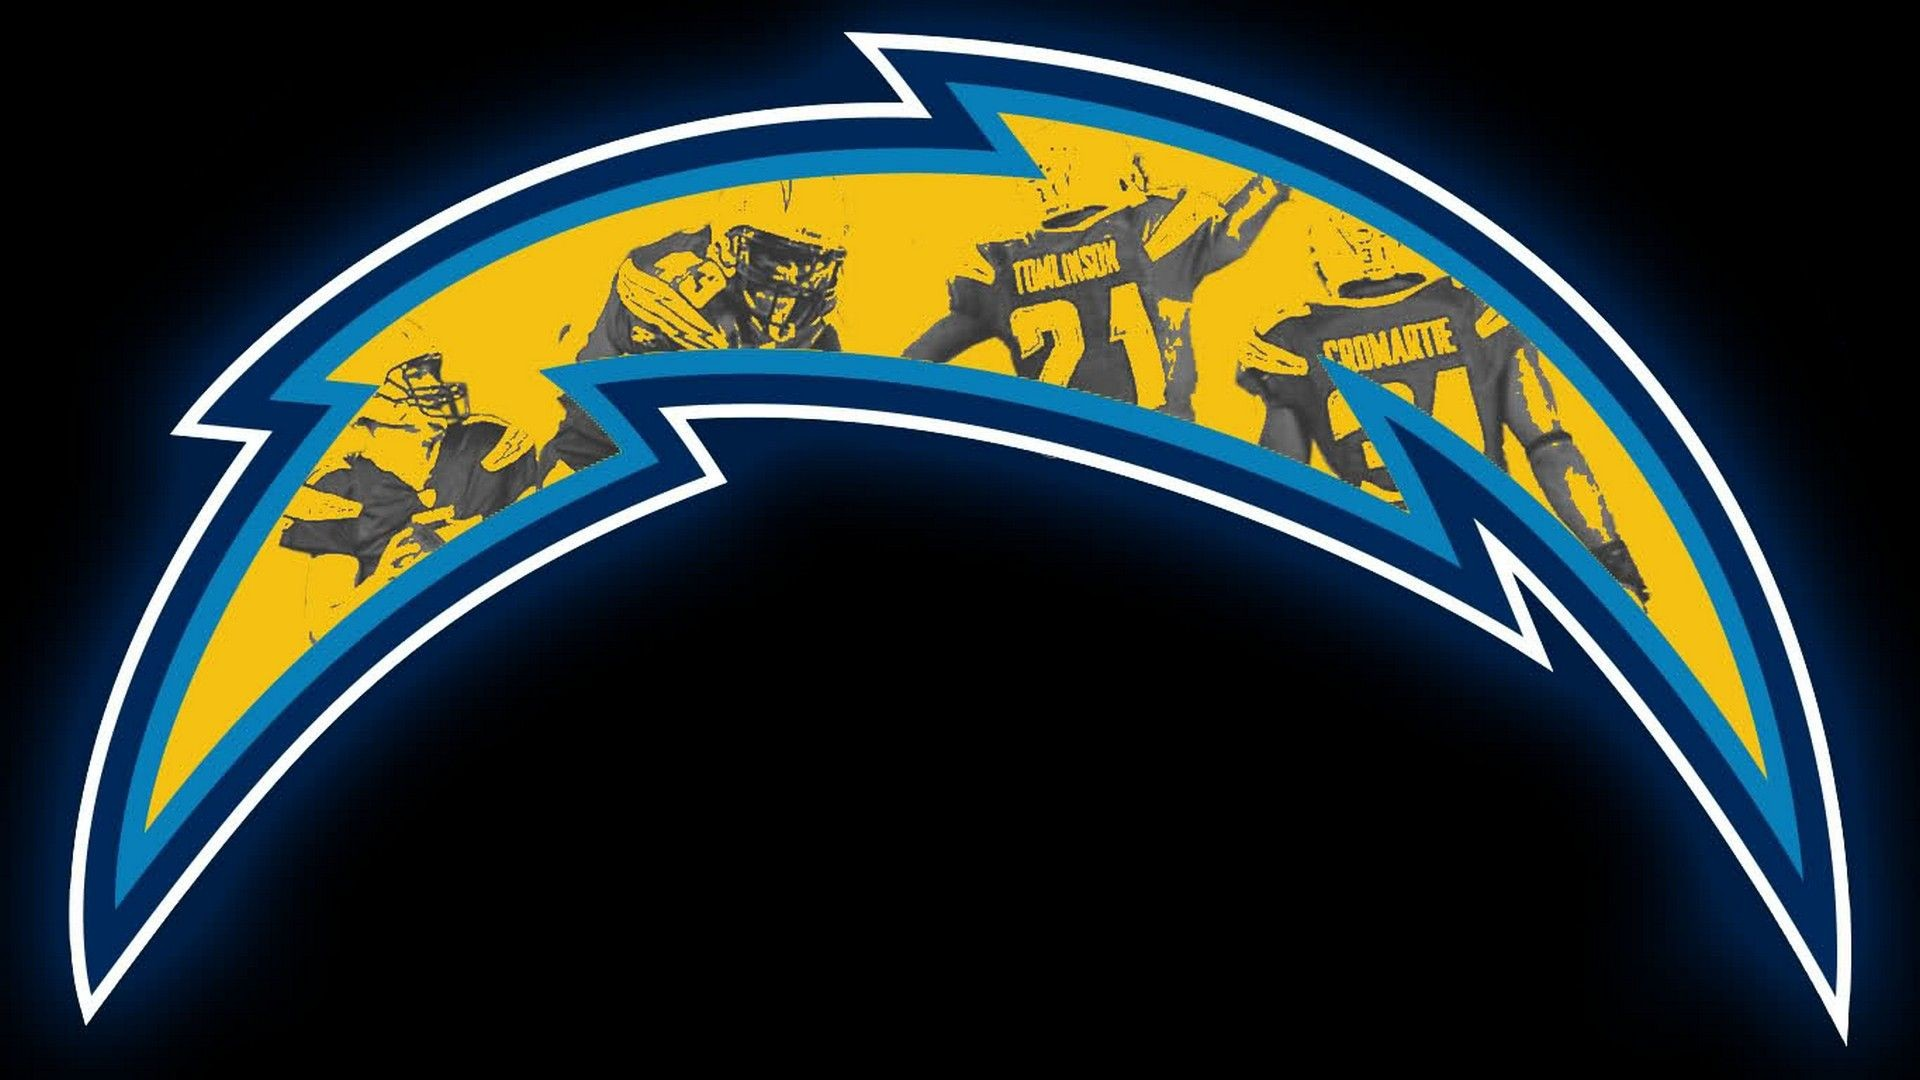 1920x1080 Los Angeles Chargers Wallpaper HD | Best NFL Wallpapers